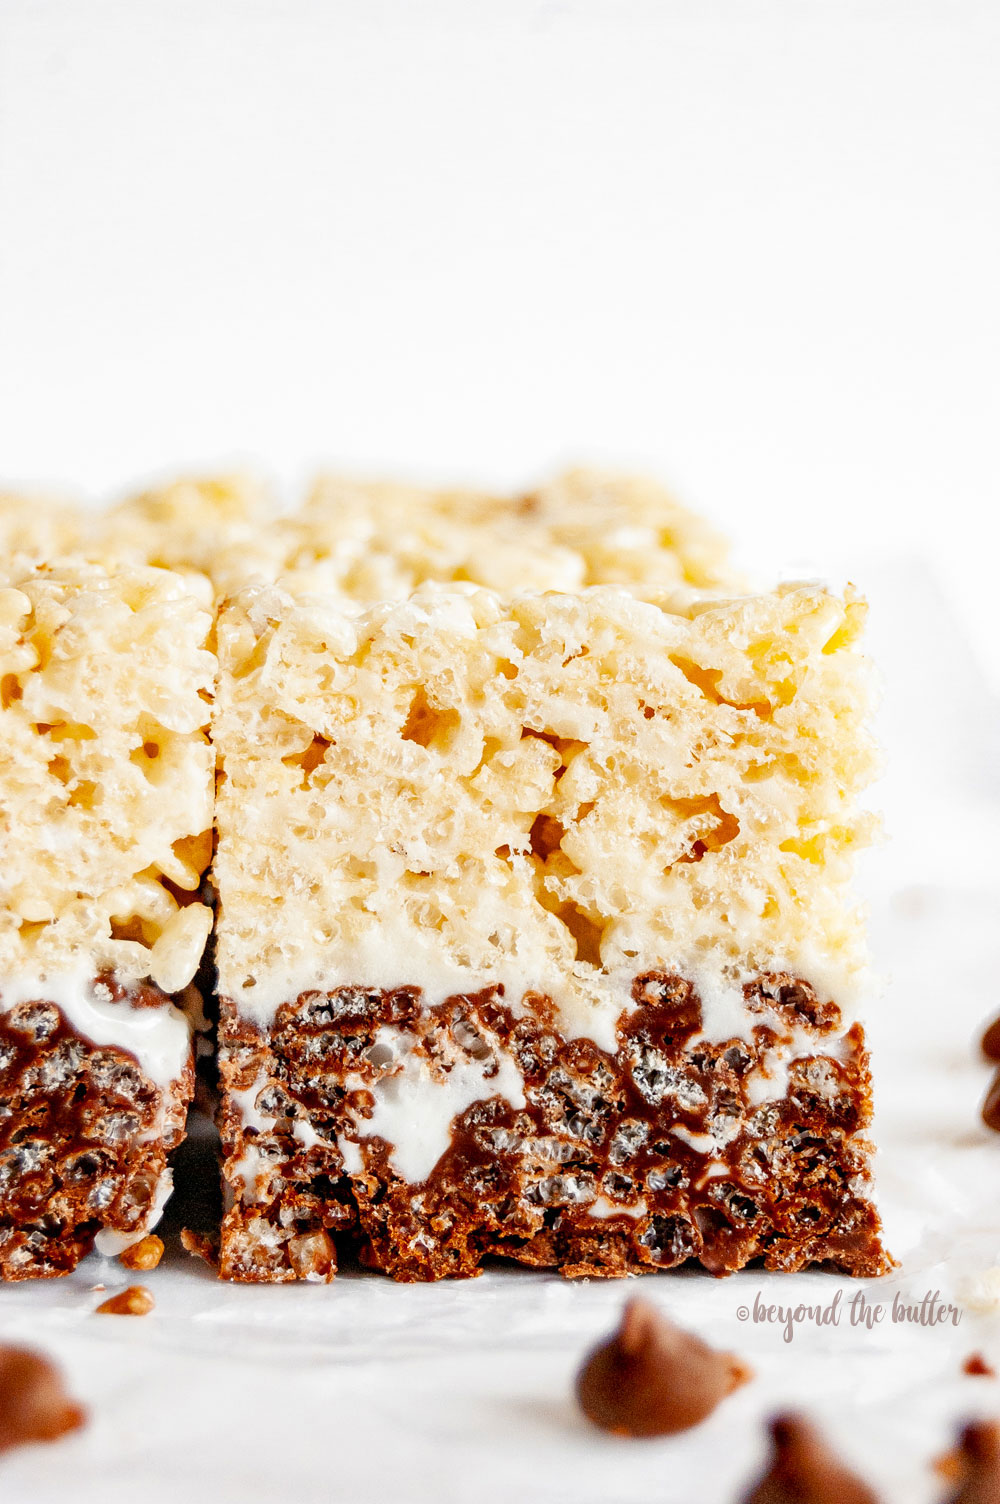 Chocolate-Vanilla Layered Rice Krispie Treats | All Images © Beyond the Butter, LLC